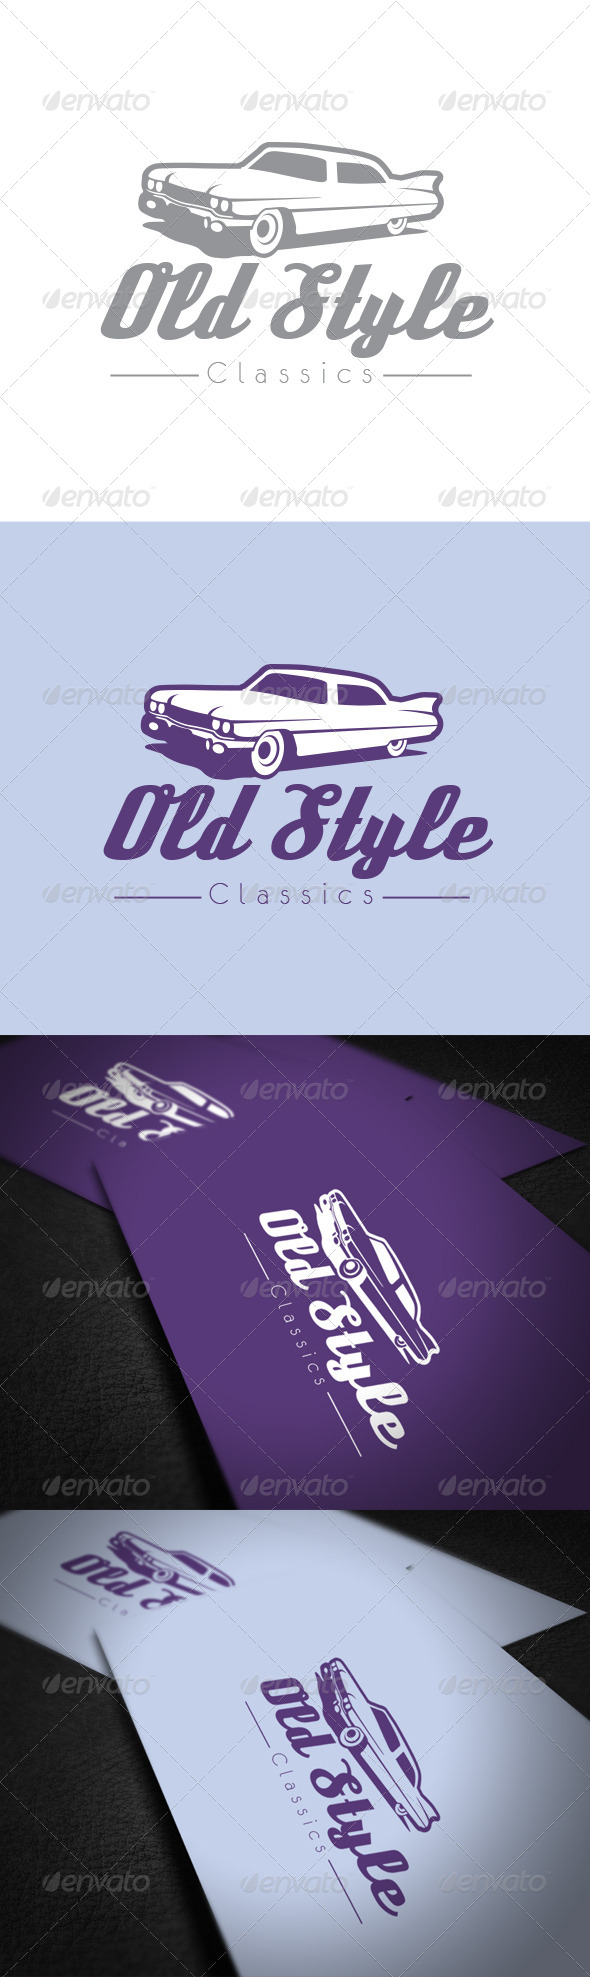 GraphicRiver Old Style Car Logo Template 6316610